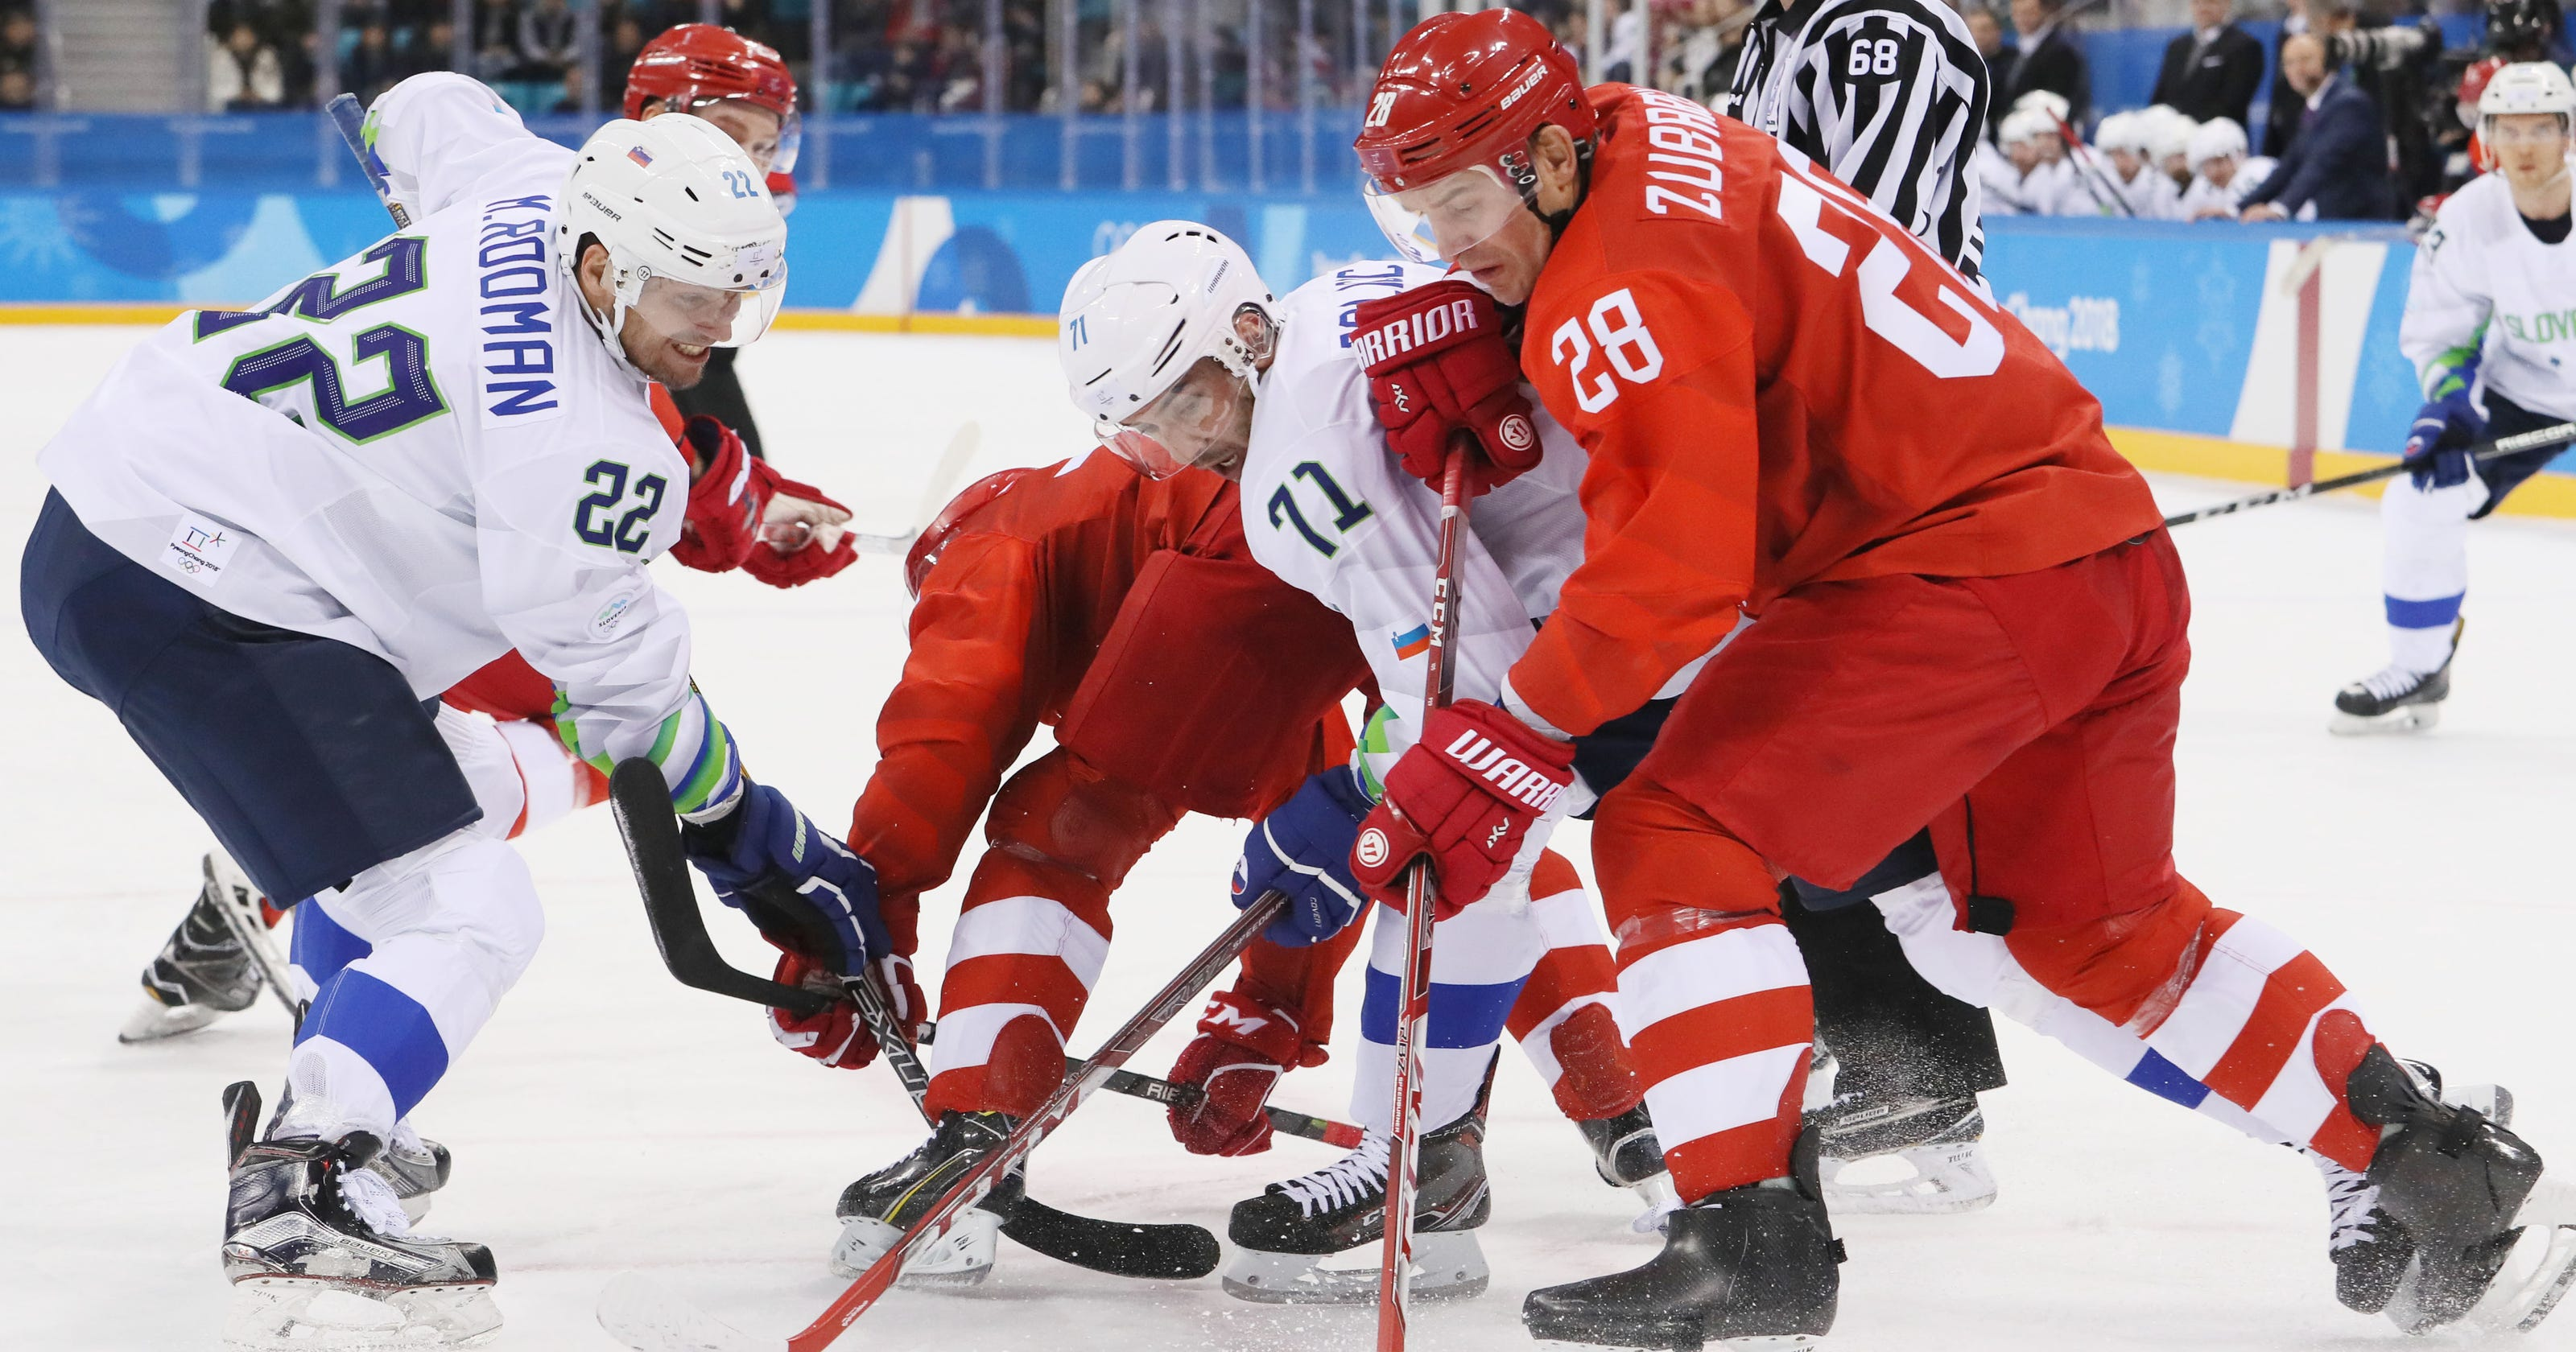 eb7de4d4f4b Hockey  Here s why no NHL players are at the 2018 Winter Olympics